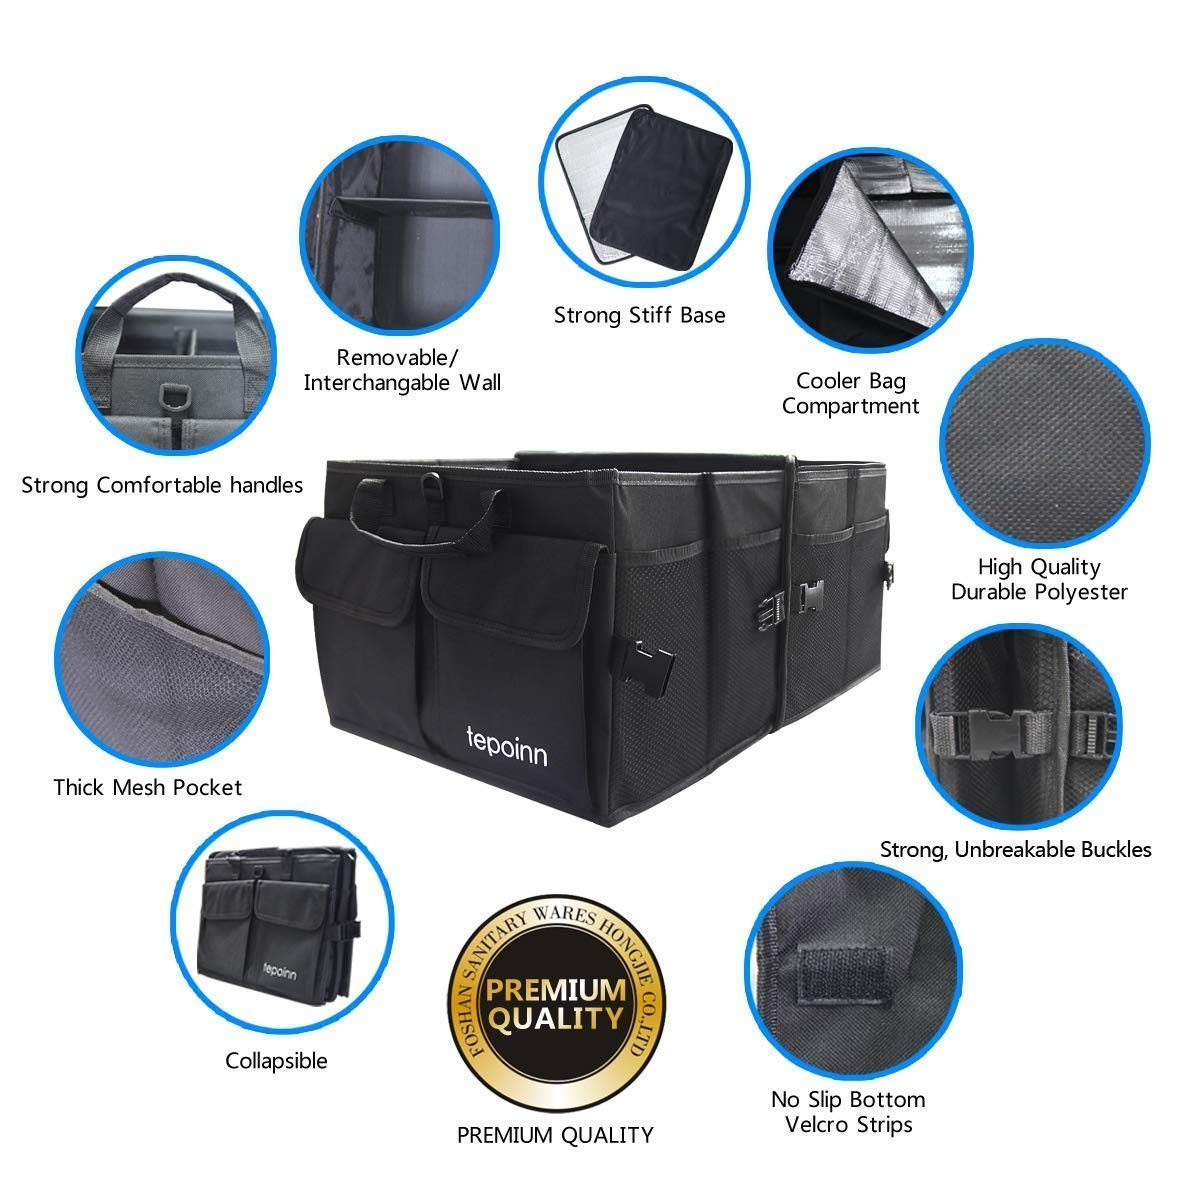 Tepoinn Car Trunk Storage with Cooler Compartment Collapsible Portable Car Storage Organiser with Non Slip Bottom Strips Perfect for Any Vehicle